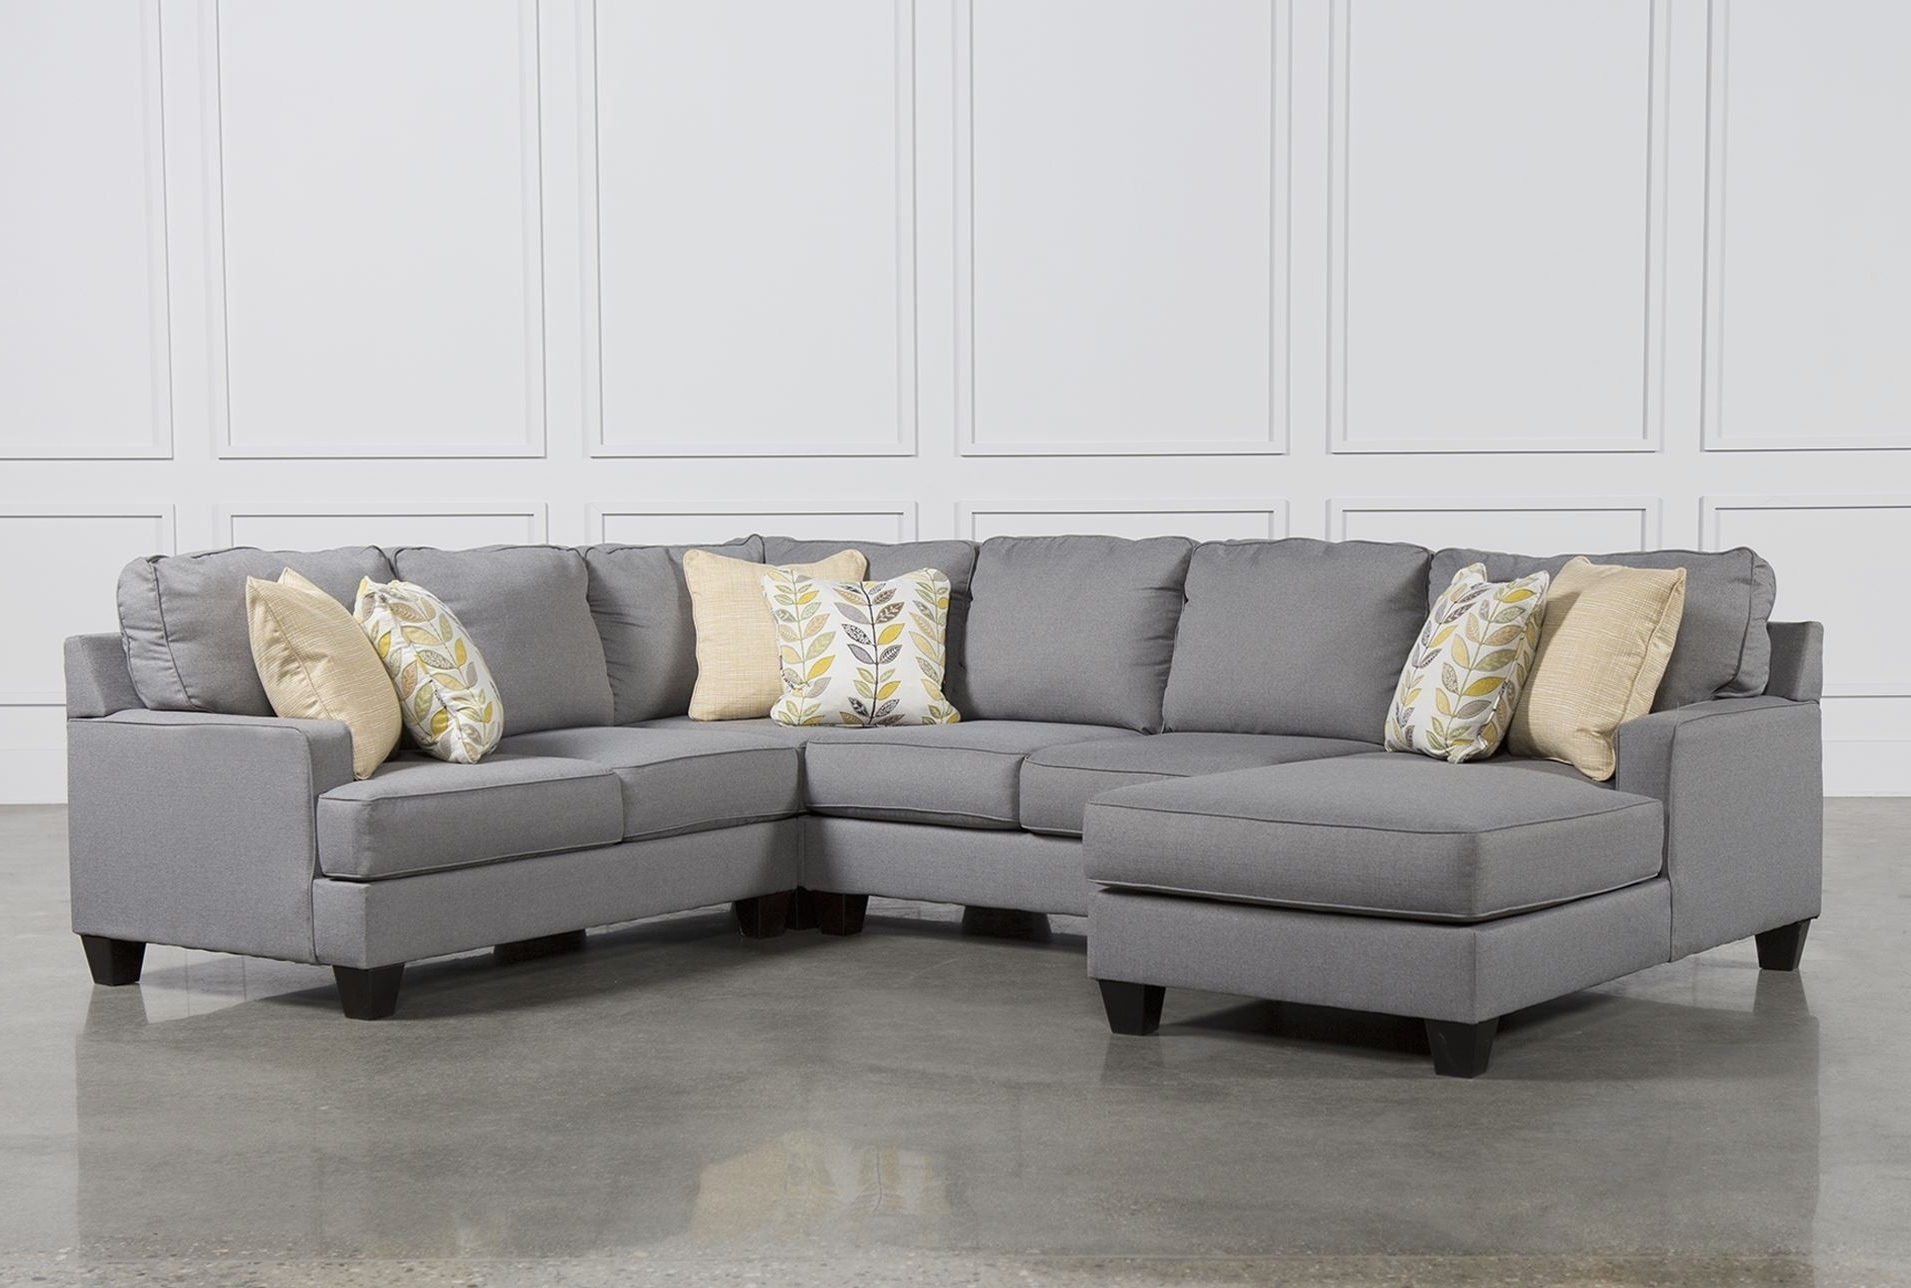 4 Piece Sectional W Armless Sofa Left Chaisebenchcraft In With throughout Most Up-to-Date 4 Piece Sectional Sofas With Chaise